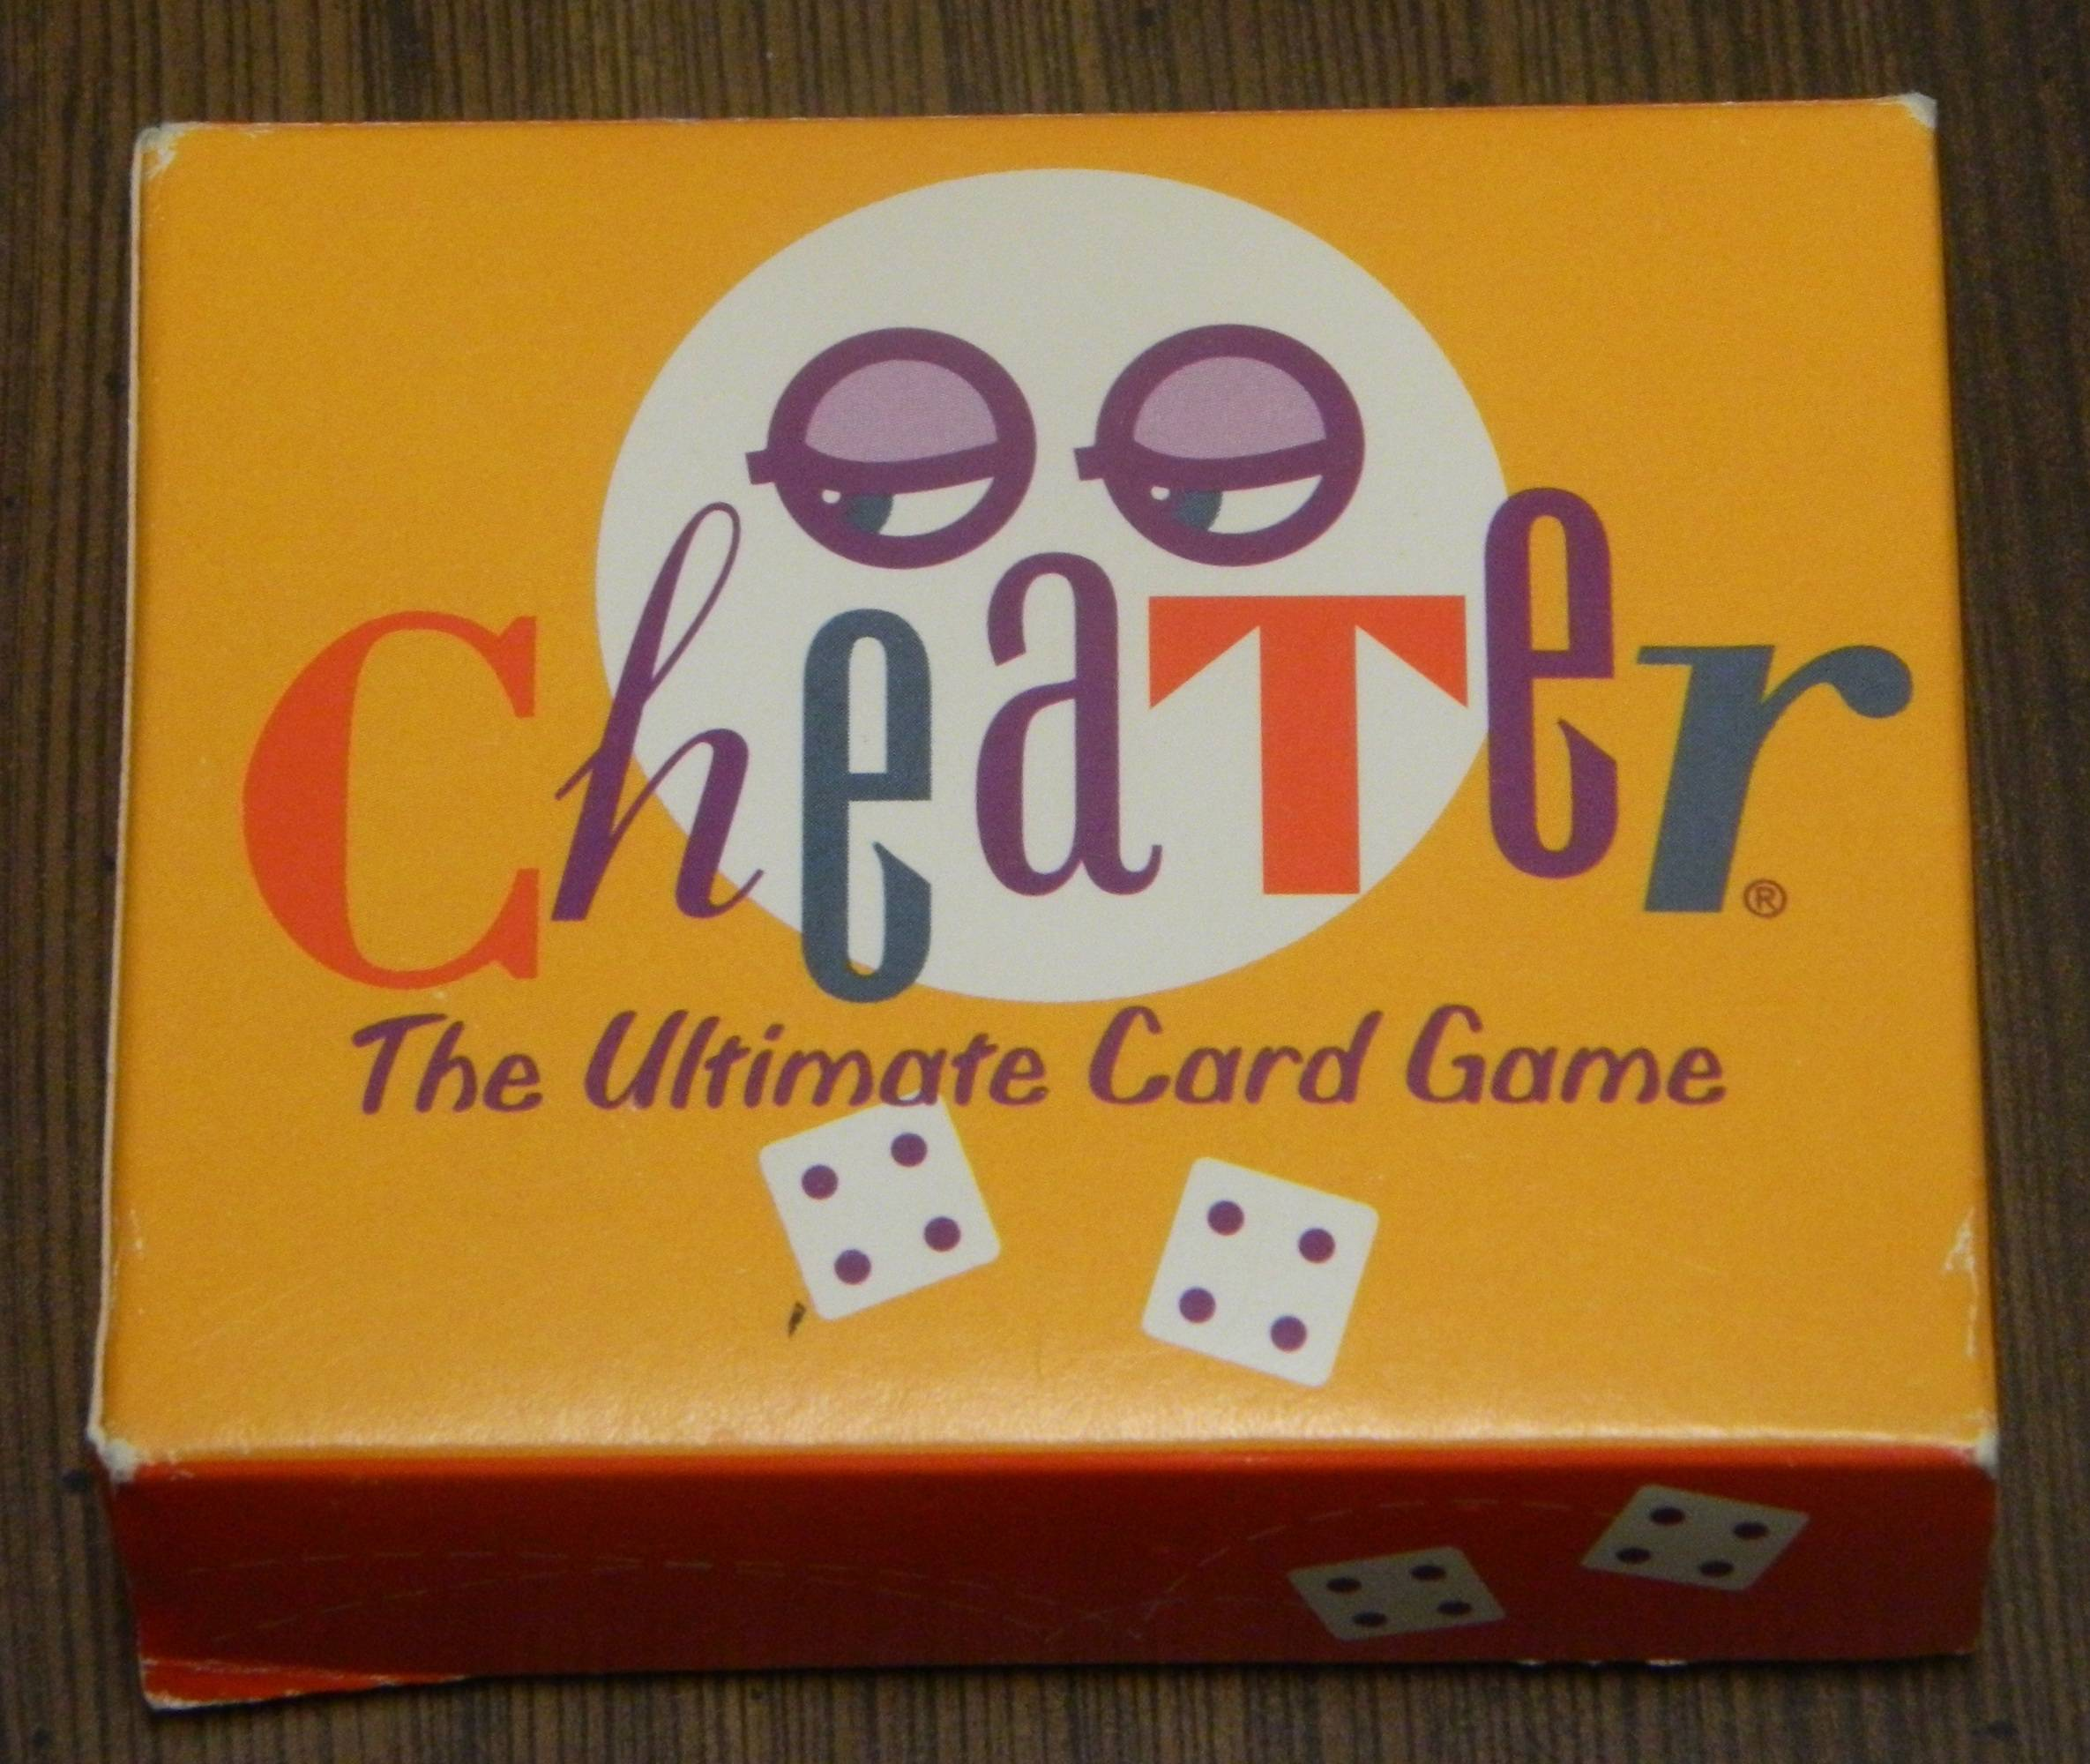 Cheater Card Game Box